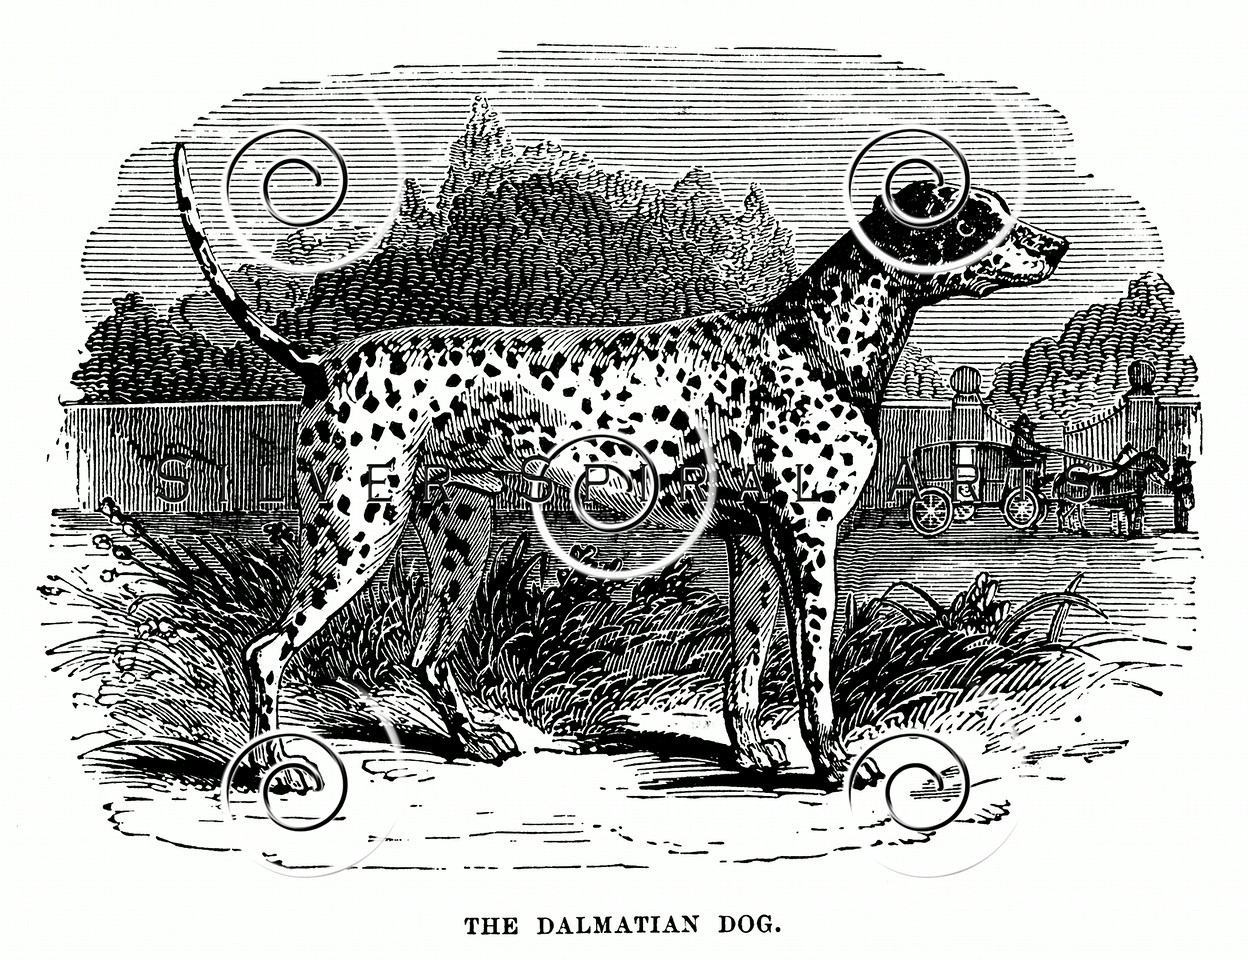 Vintage Dalmation Dogs Illustration - 1800s Dog Images